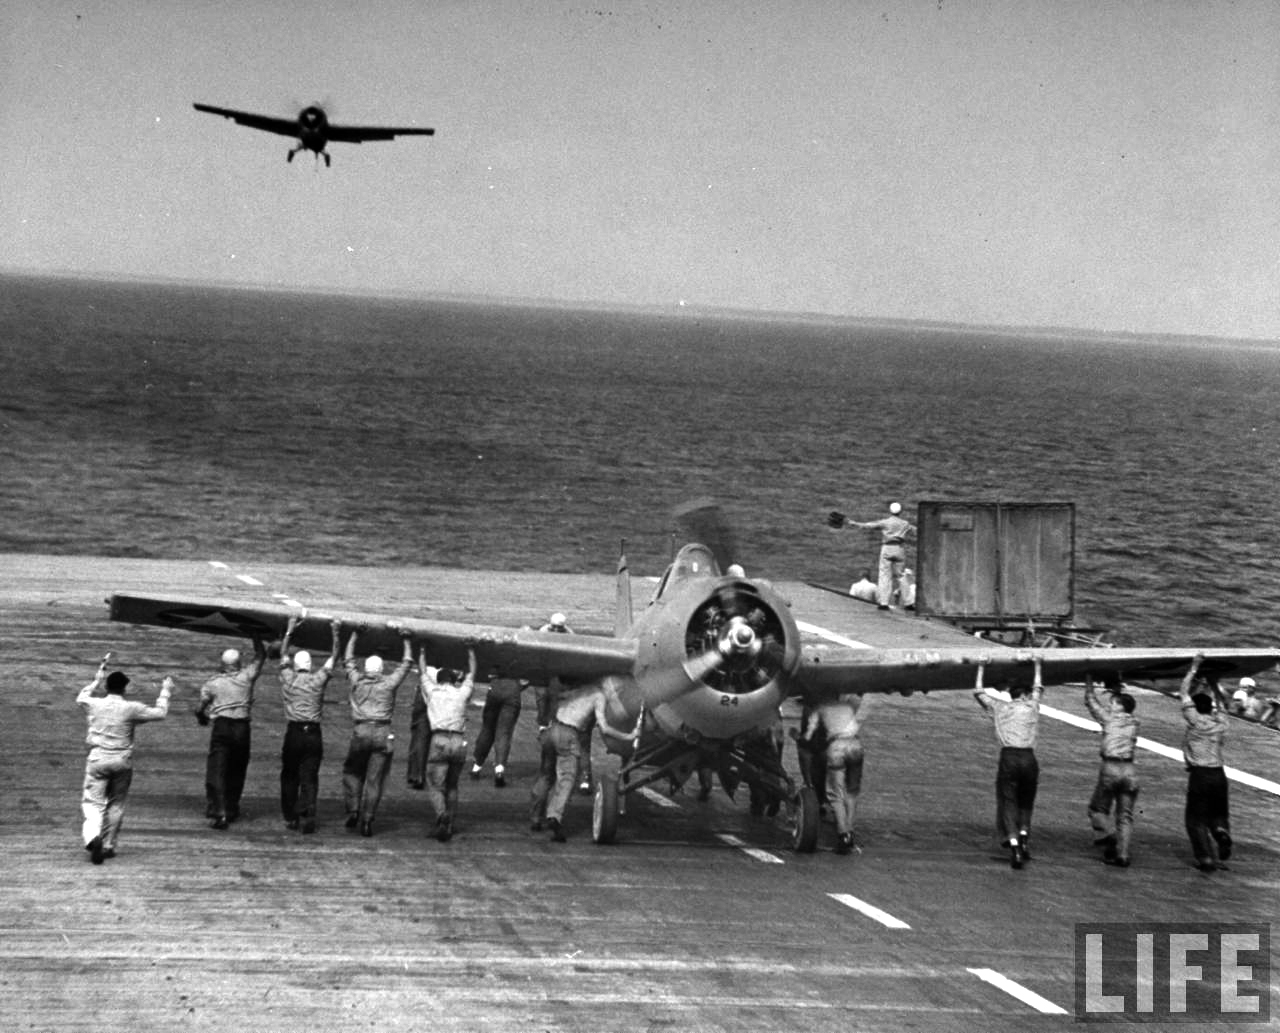 Grumman F4F 3 Wildcat Black 24 being urgently pushed back to clear the deck 01